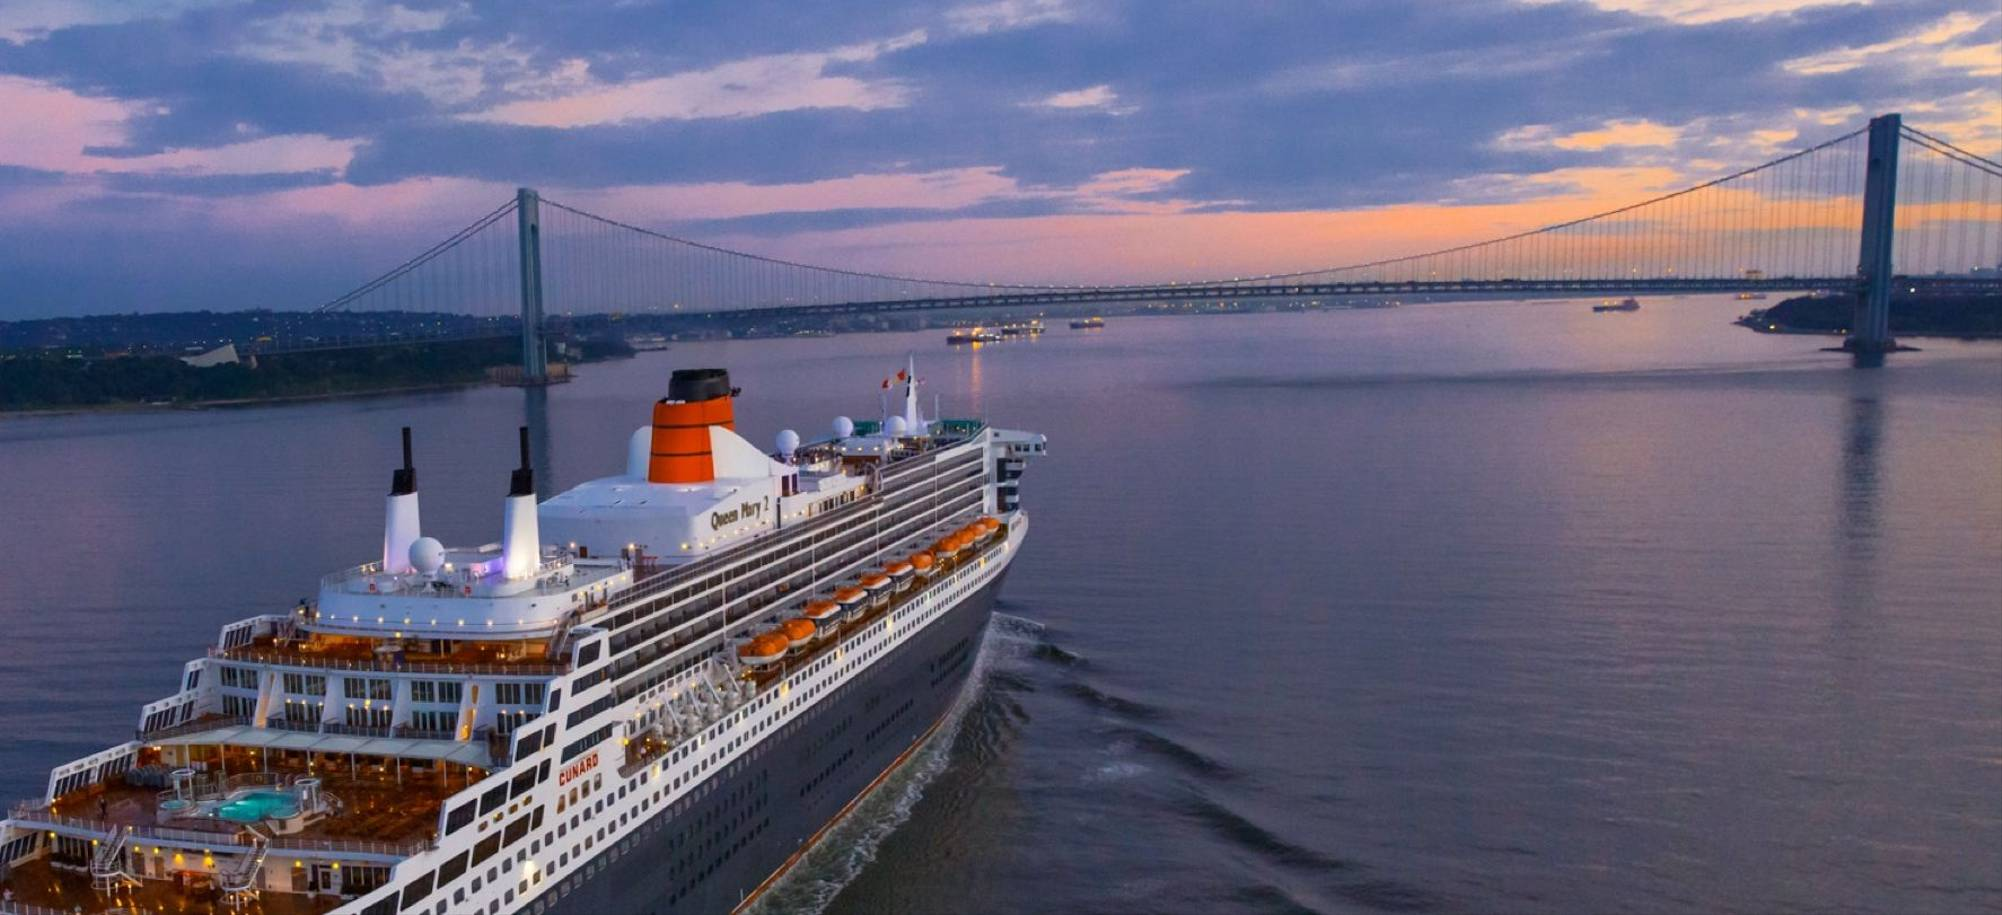 1 Day - Embark QM2 - Itinerary Desktop.jpg